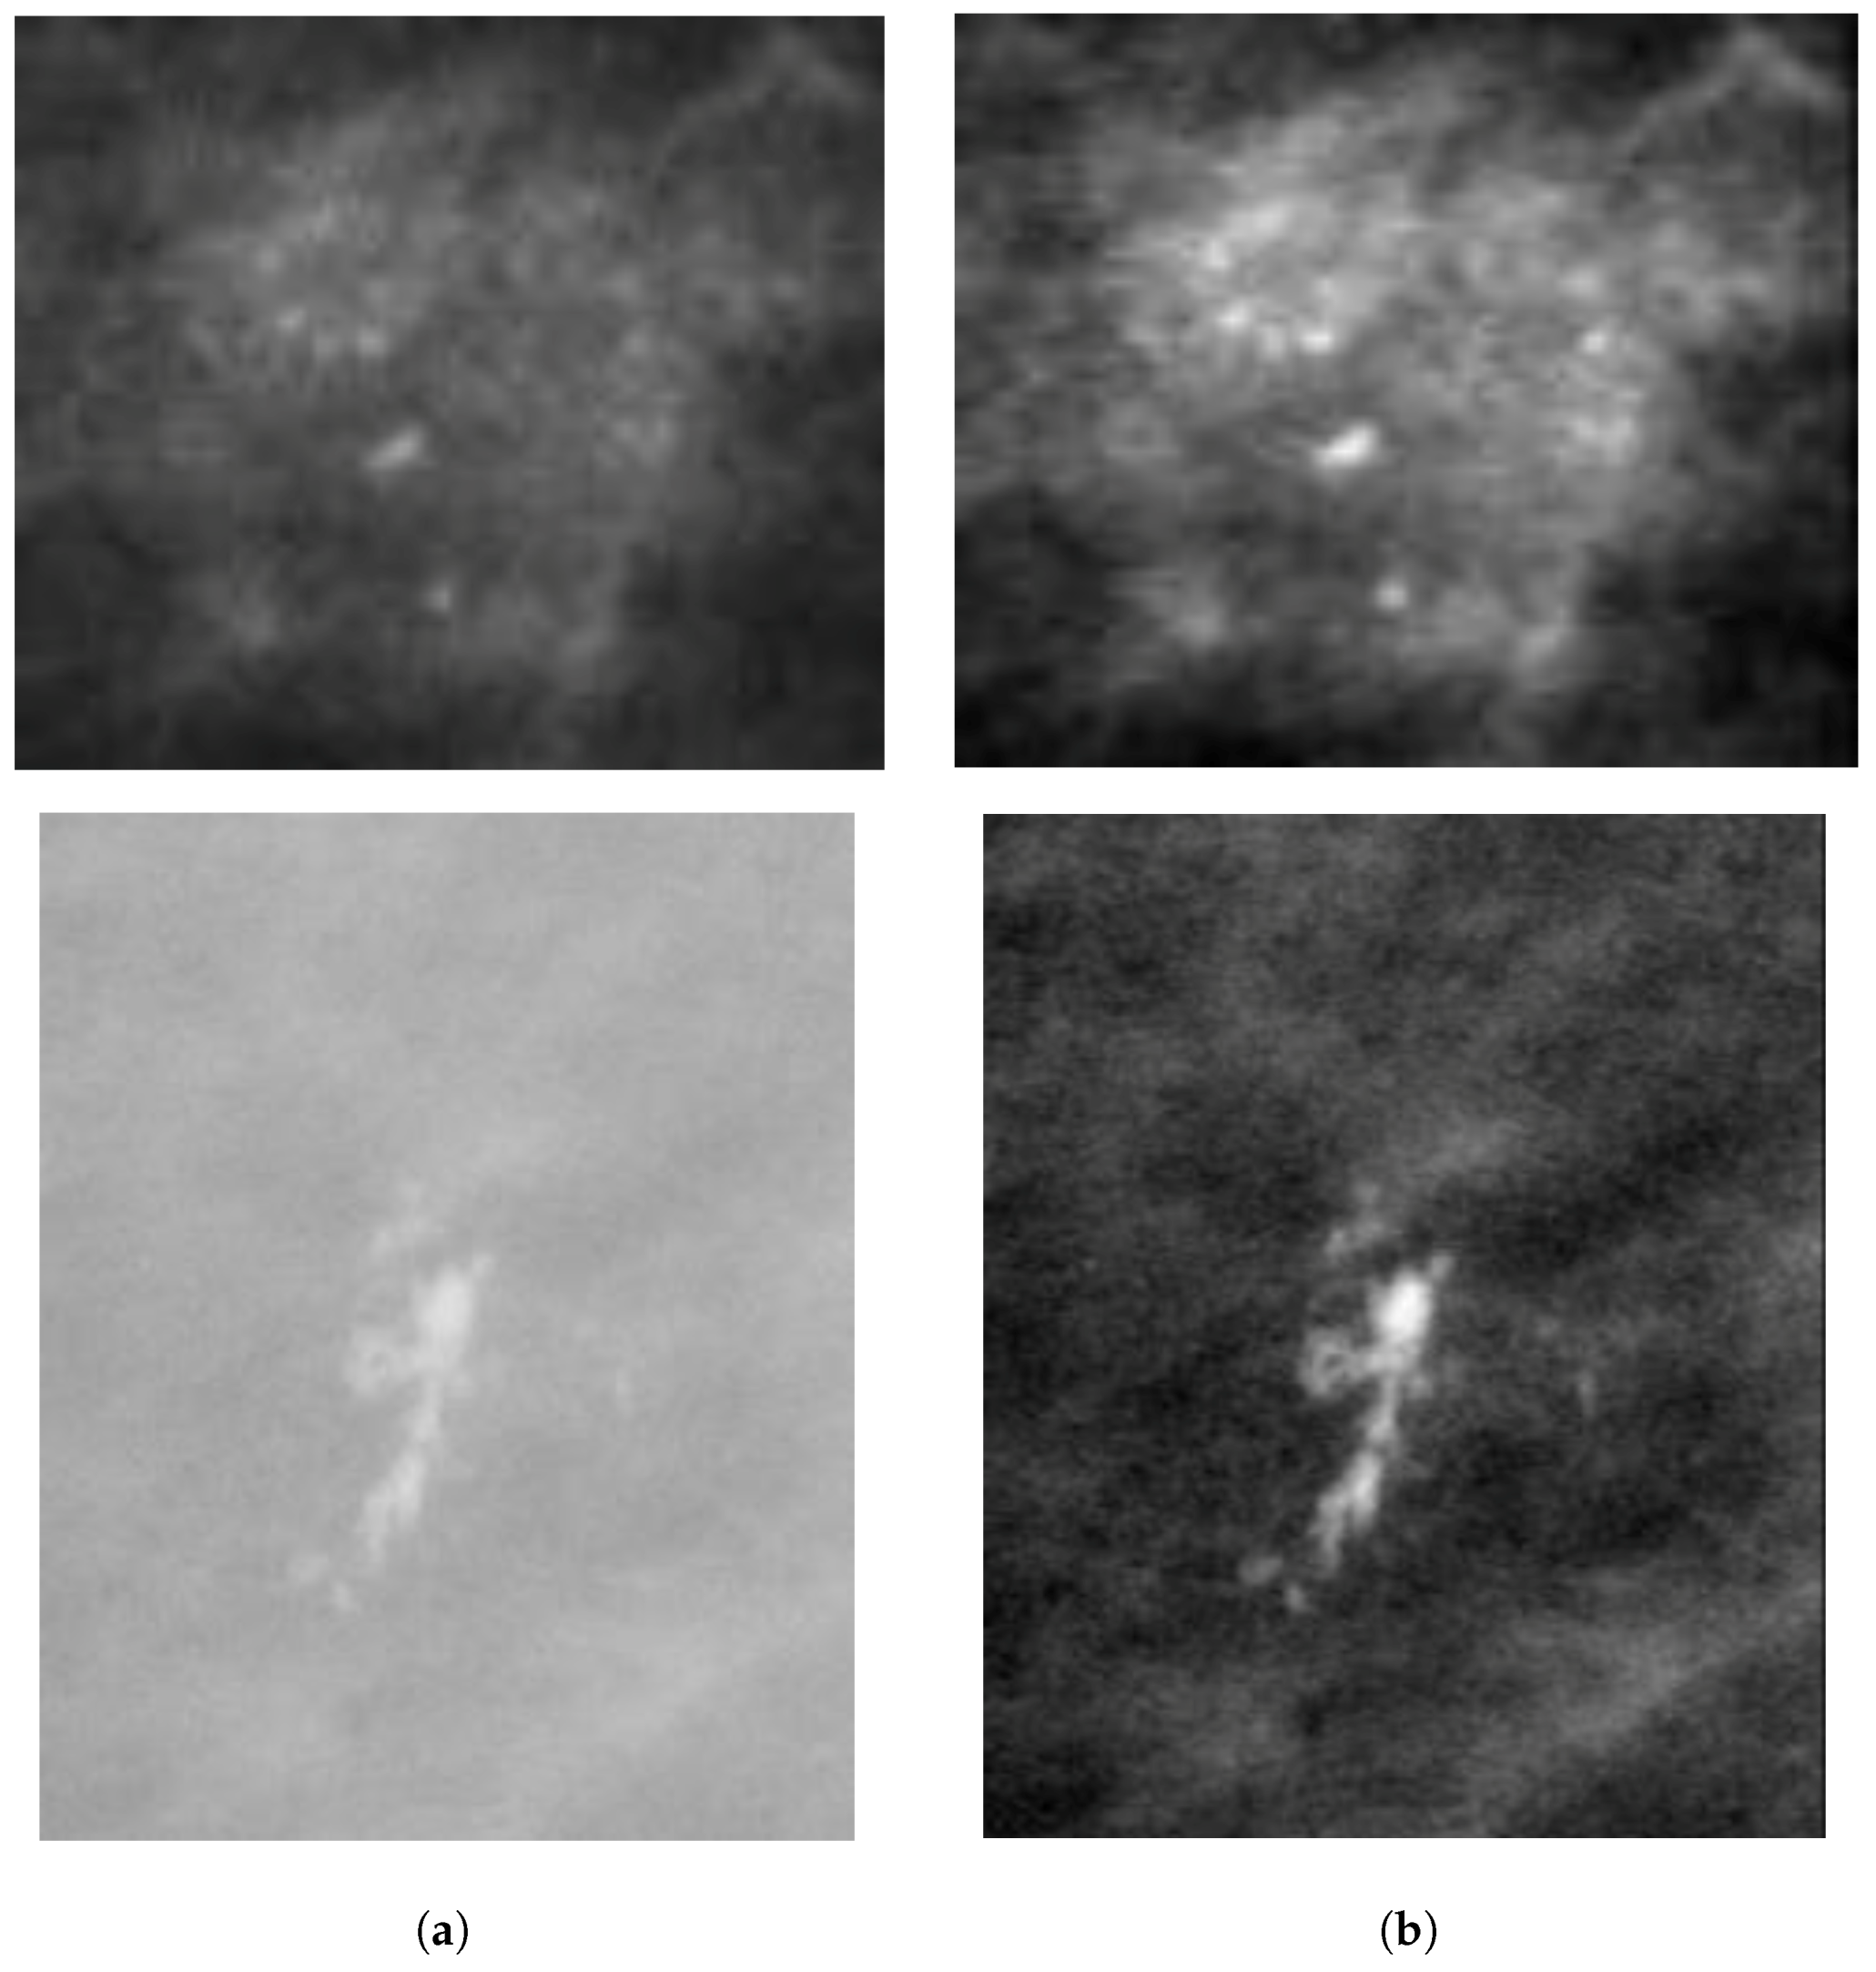 J Imaging Free Full Text Classification Of Microcalcification